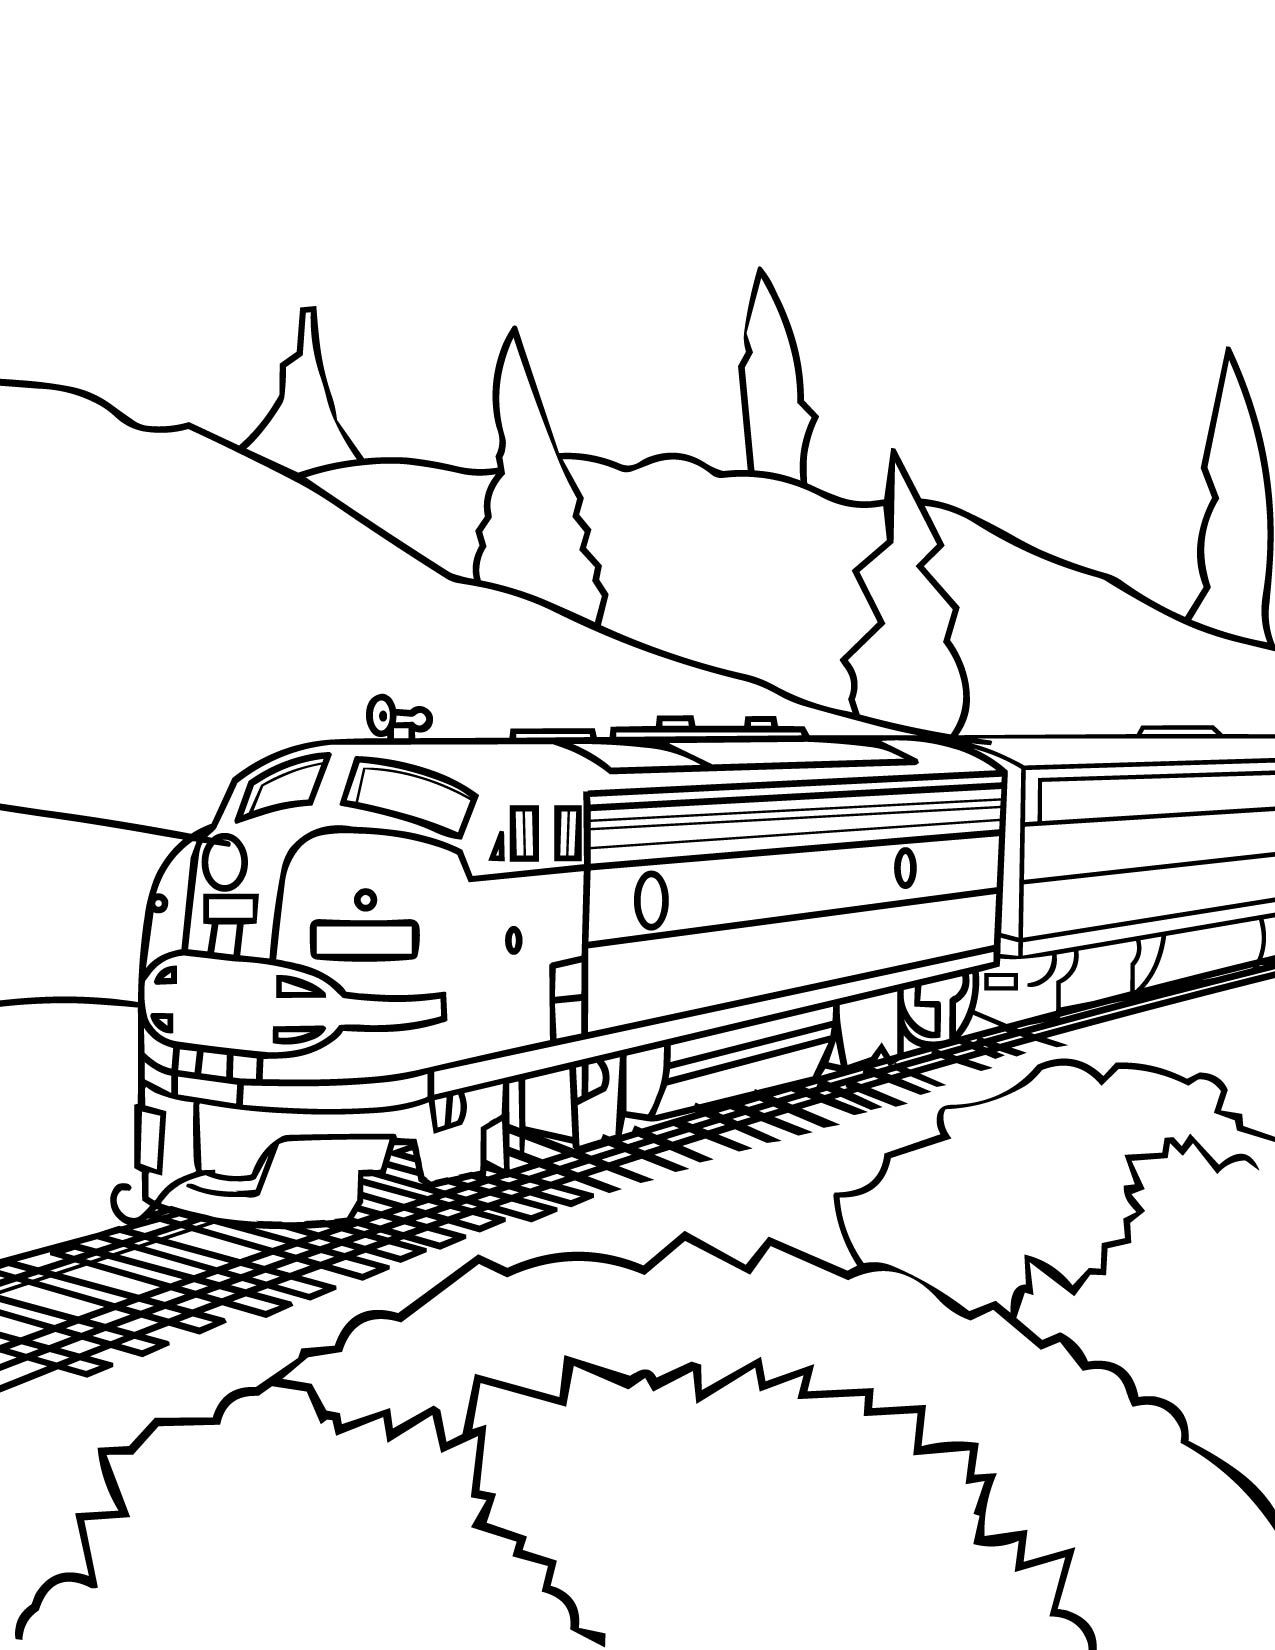 Train coloring pages for toddlers - Train Coloring Pages Free Printable Enjoy Coloring